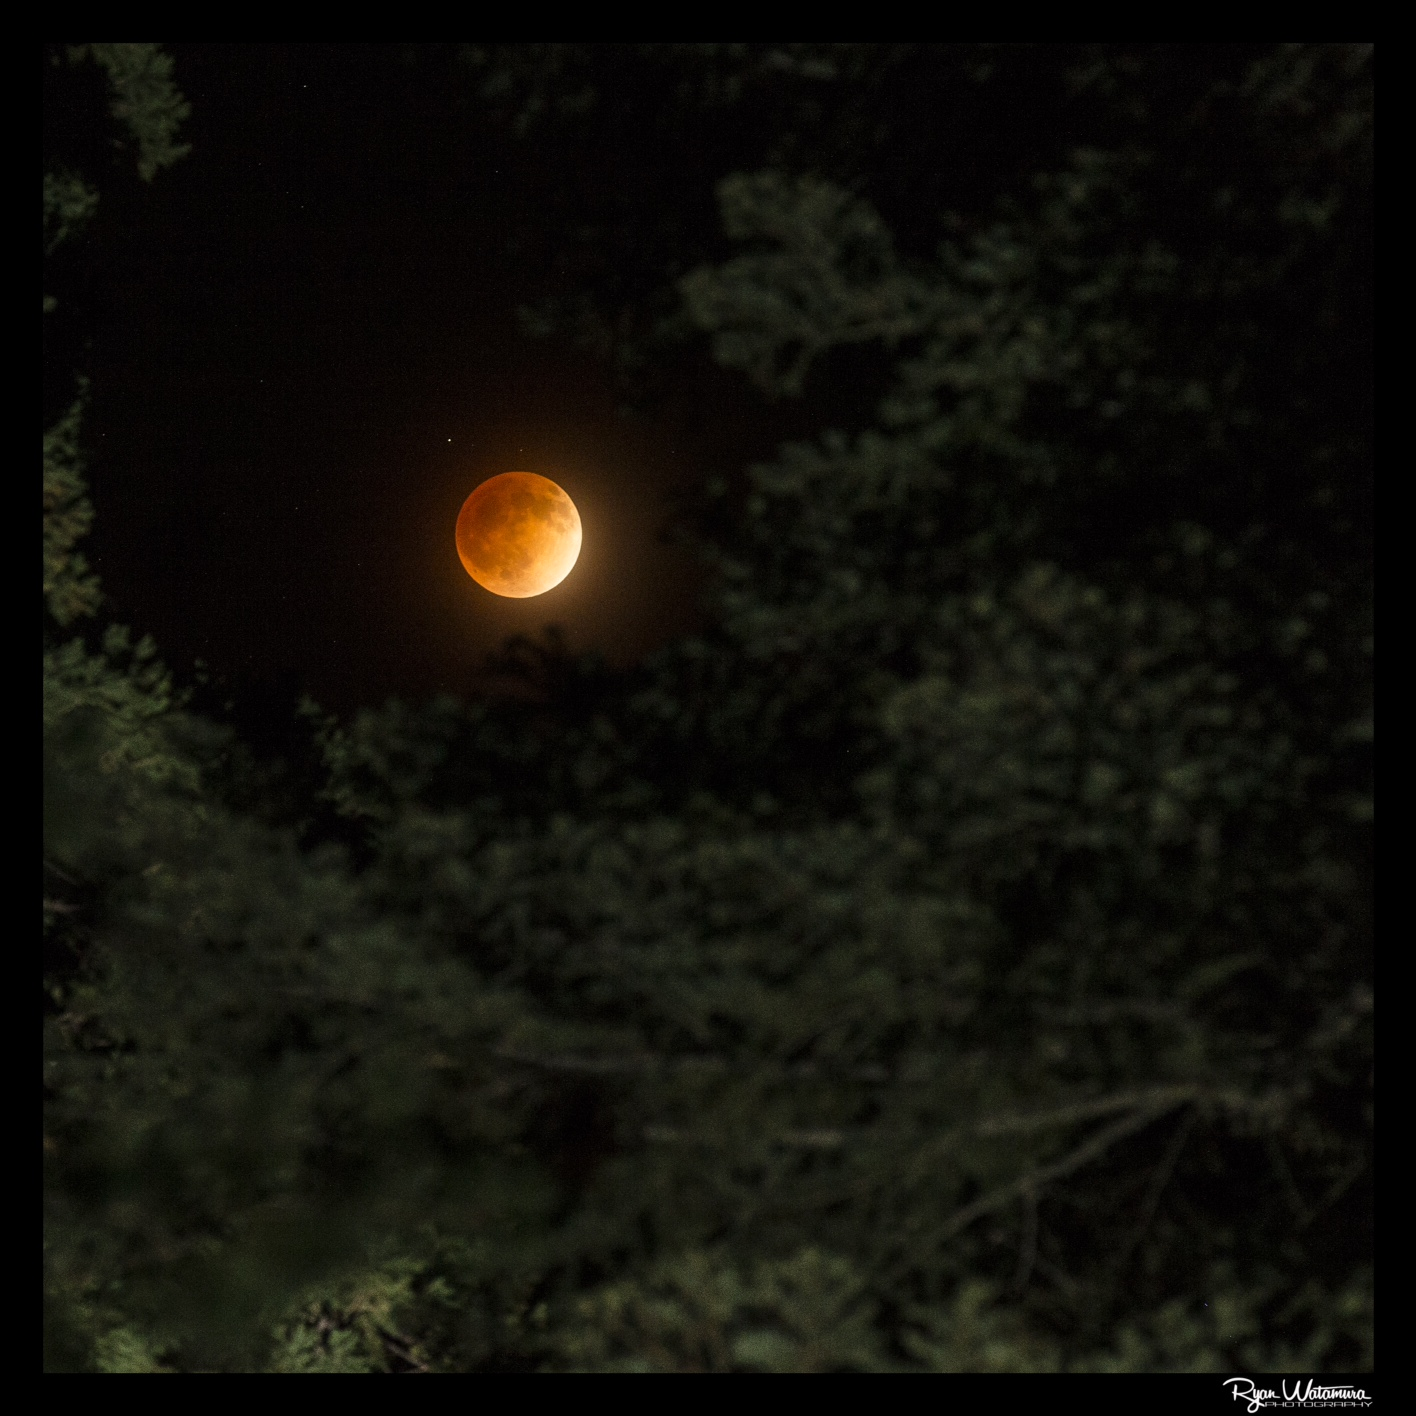 Total Lunar Eclipse from Grant's Grove: Ryan Watamura